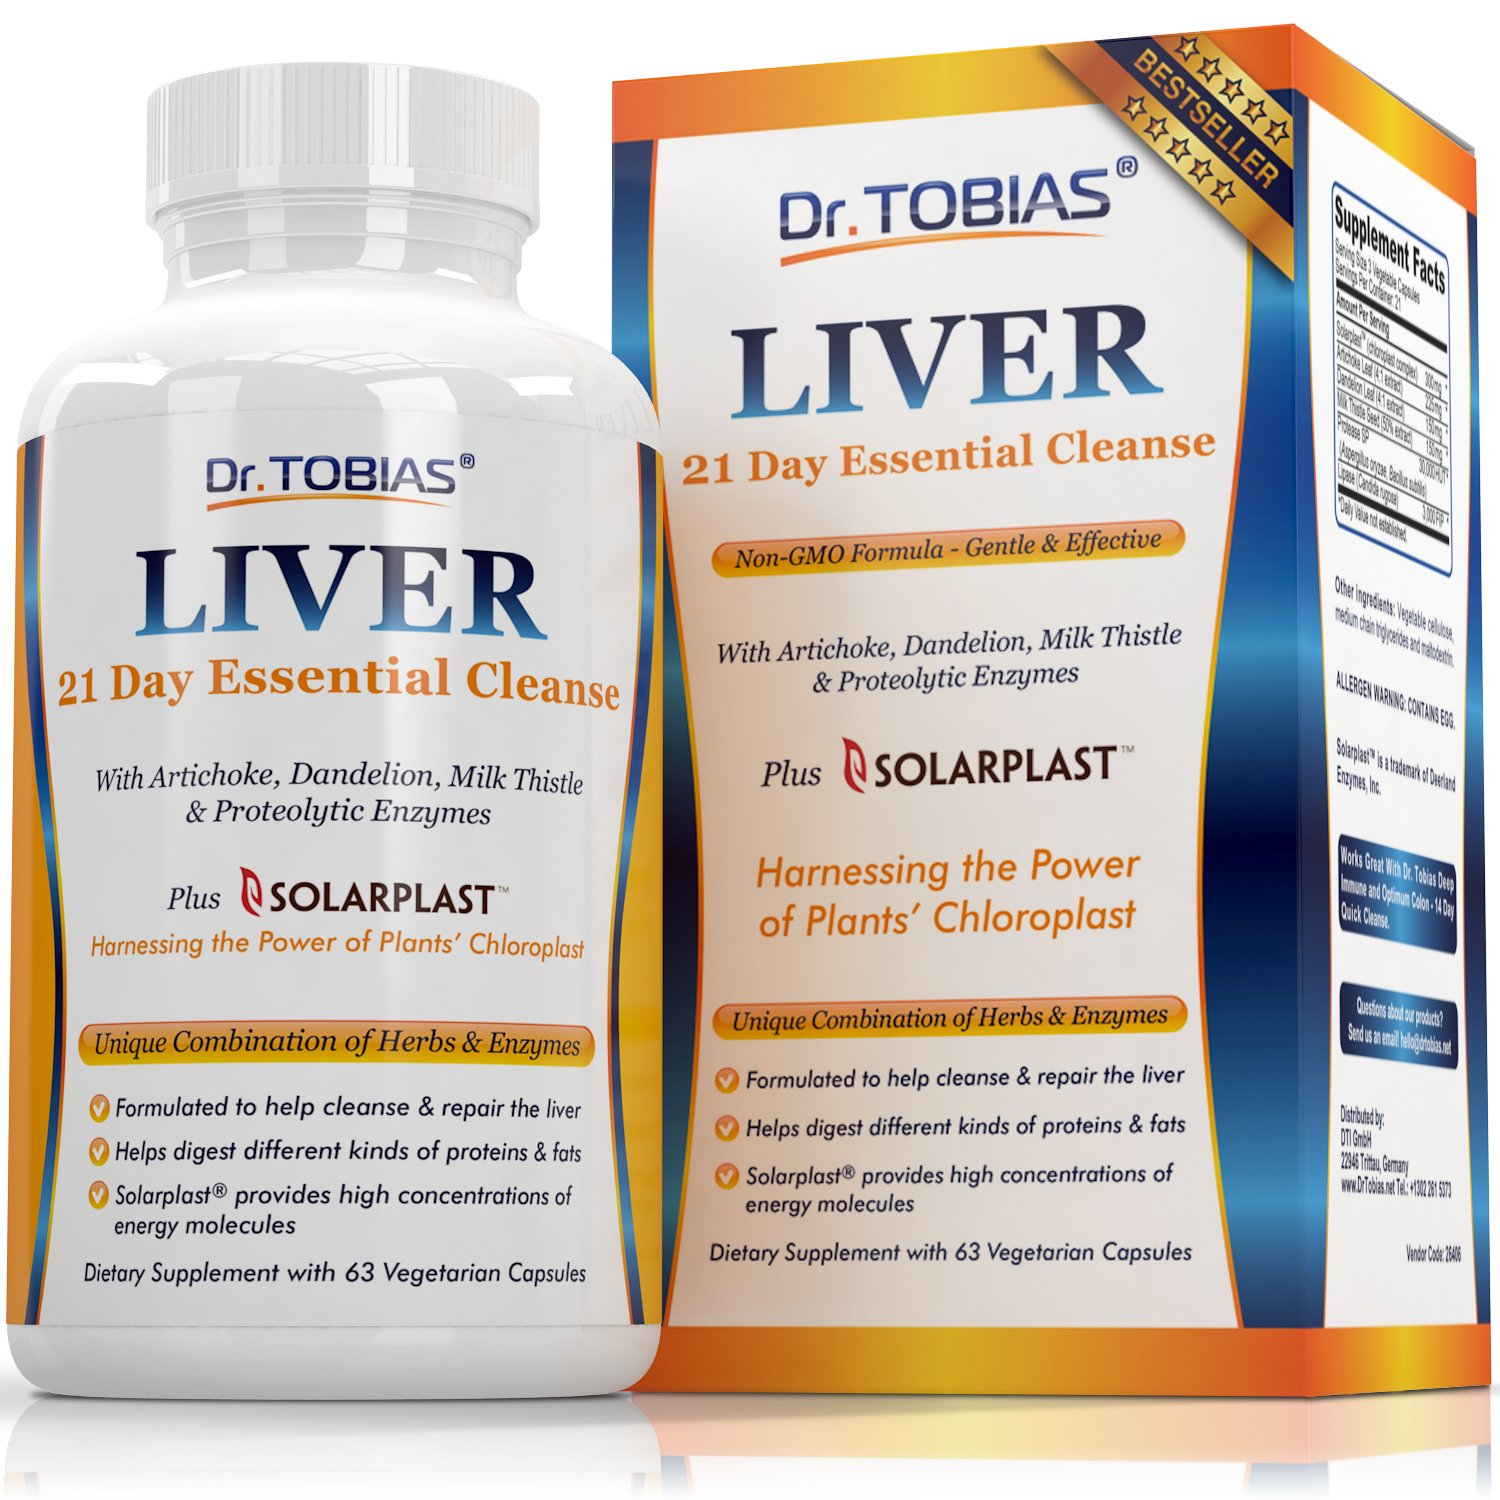 Liver Support Supplement - Cleanse & Detox Pills: Detoxifier & Regenerator - Solarplast, Milk Thistle (Silymarin), Artichoke, Dandelion & Proteolytic Enzymes Help For Proteins & Fats